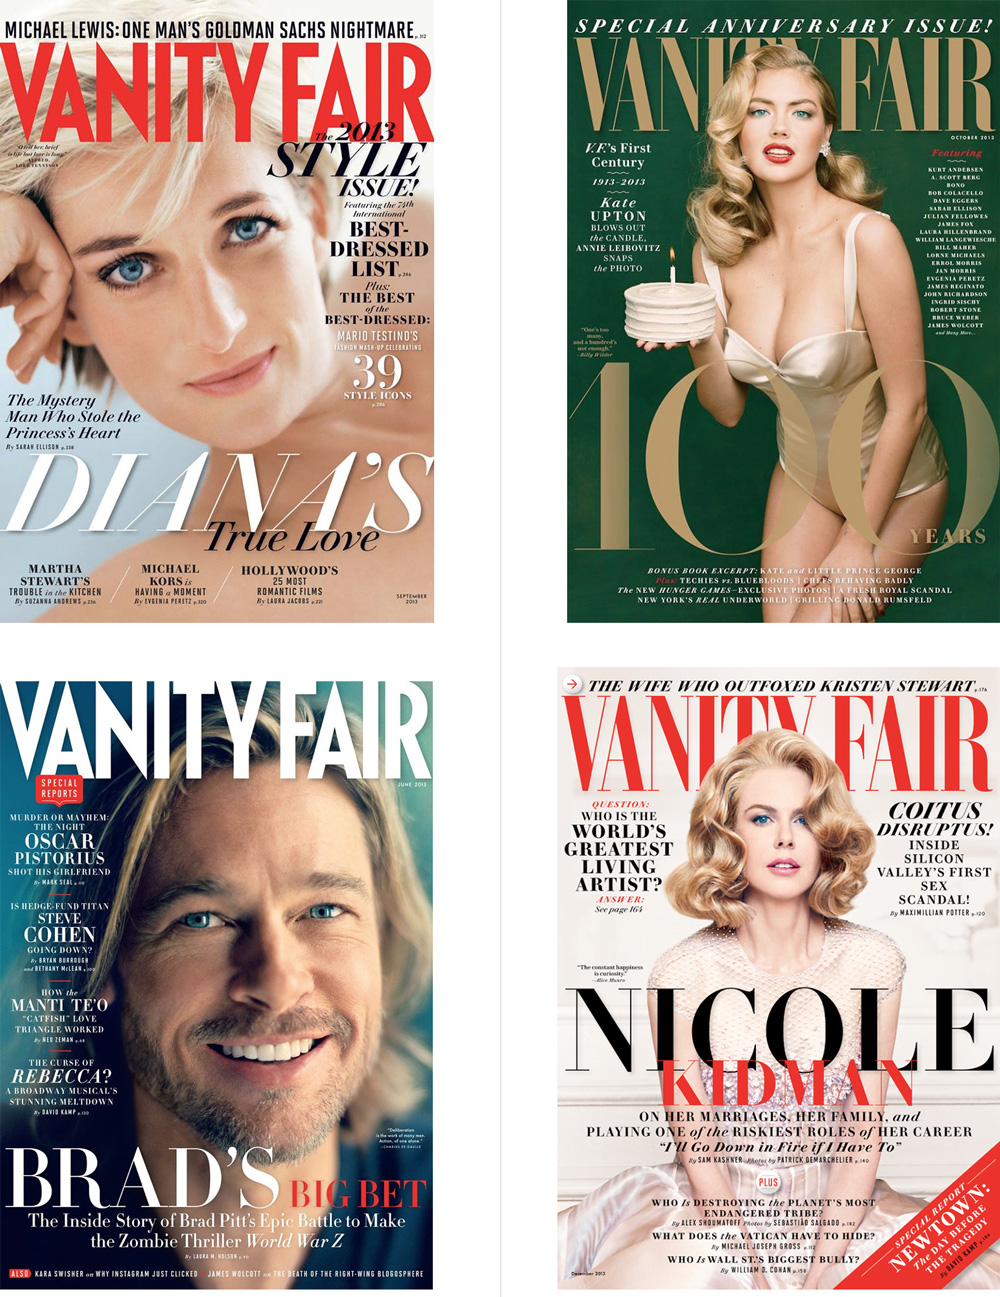 New Logo for Vanity Fair by Commercial Type